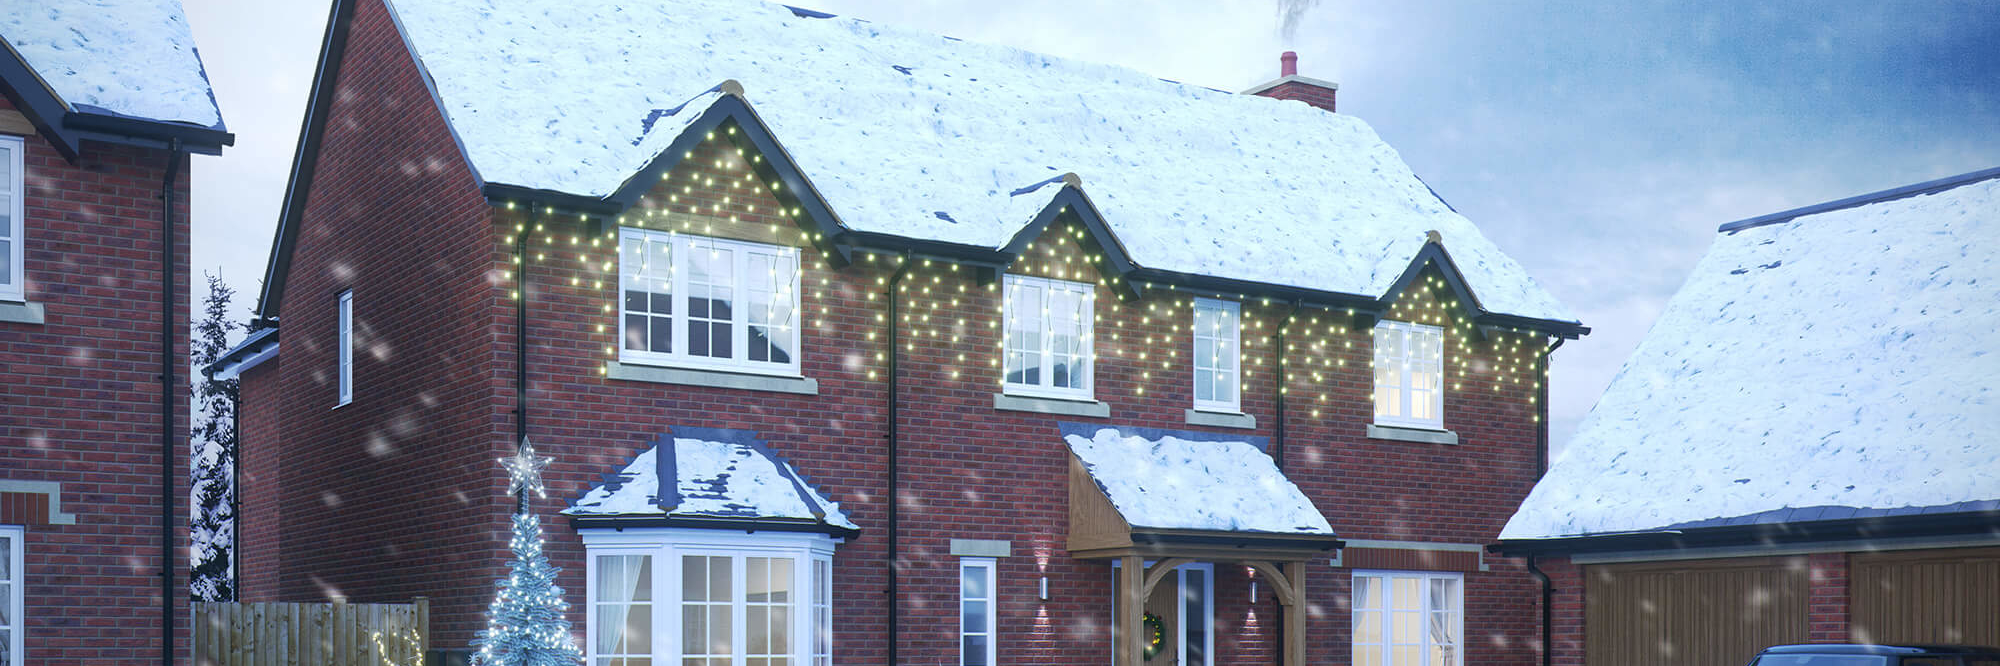 Cameron Homes Aylesbury - Christmas Image